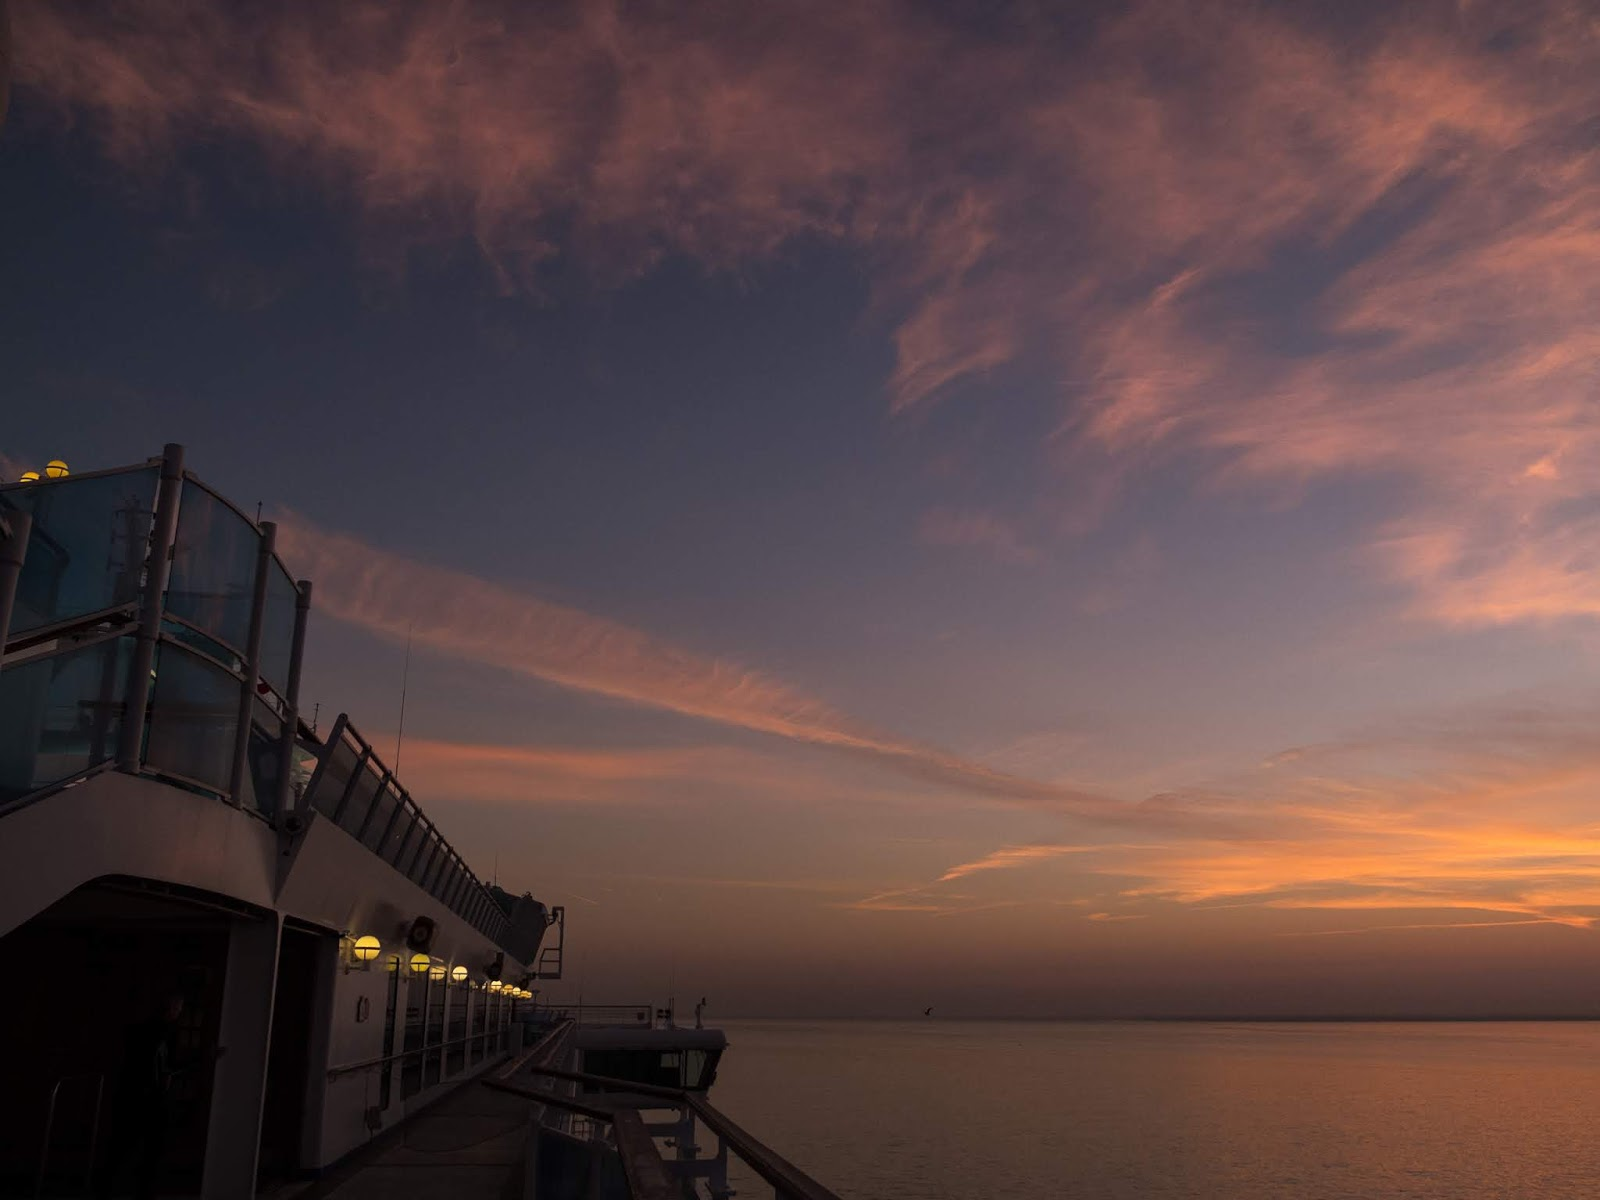 Sunrise clouds captured from a cruise ship in Lisbon.